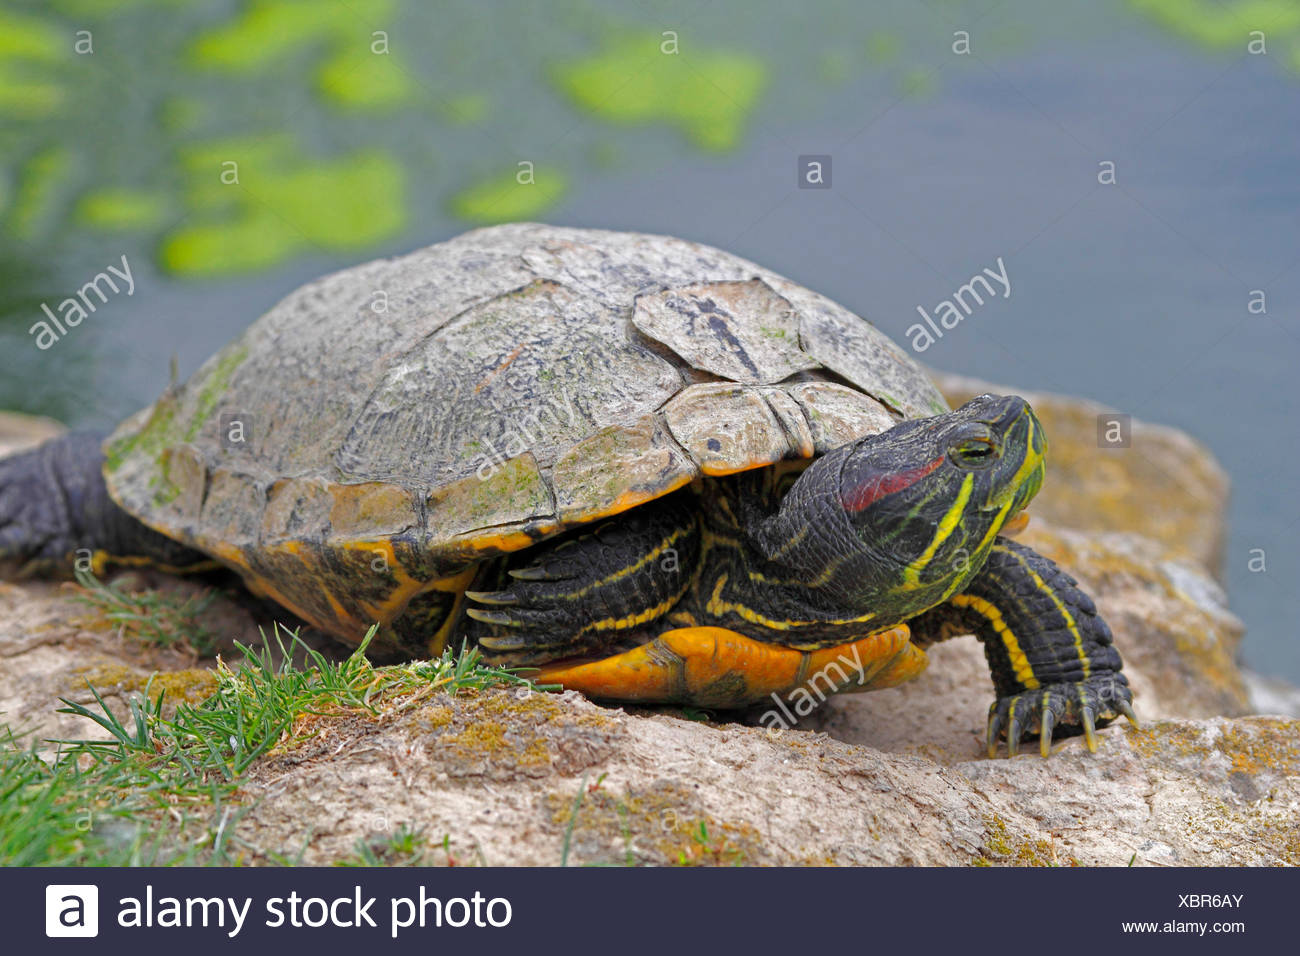 red-eared turtle, red-eared slider (Pseudemys scripta elegans, Trachemys scripta elegans, Chrysemys scripta elegans), portrait of an animal lying at the water's edge - Stock Image